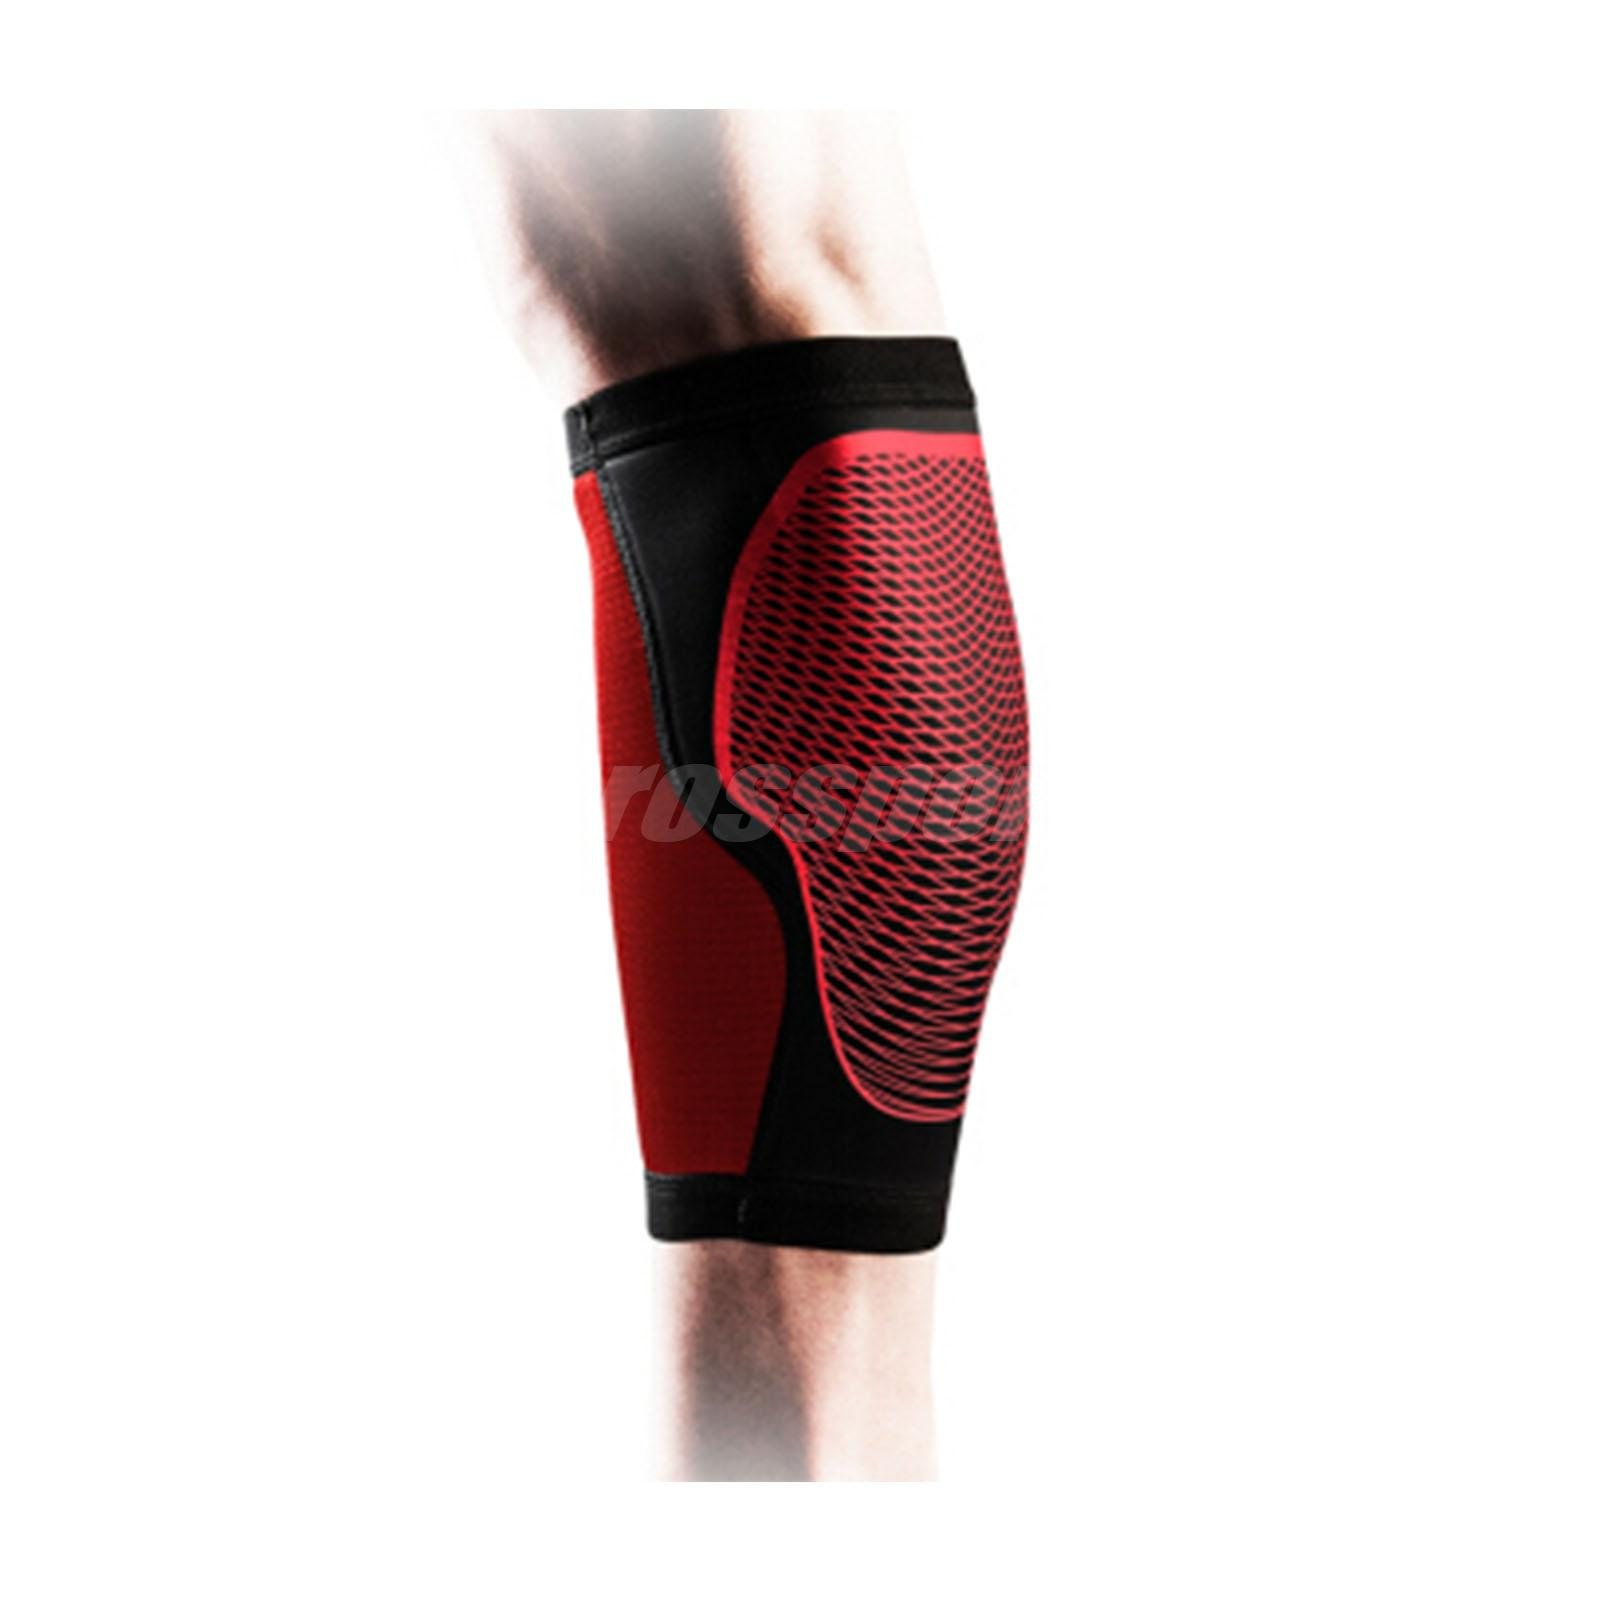 765d0bf17f9b7 Nike Pro Hyperstrong Calf Sleeve Support Compression GYM Fitness Black Red